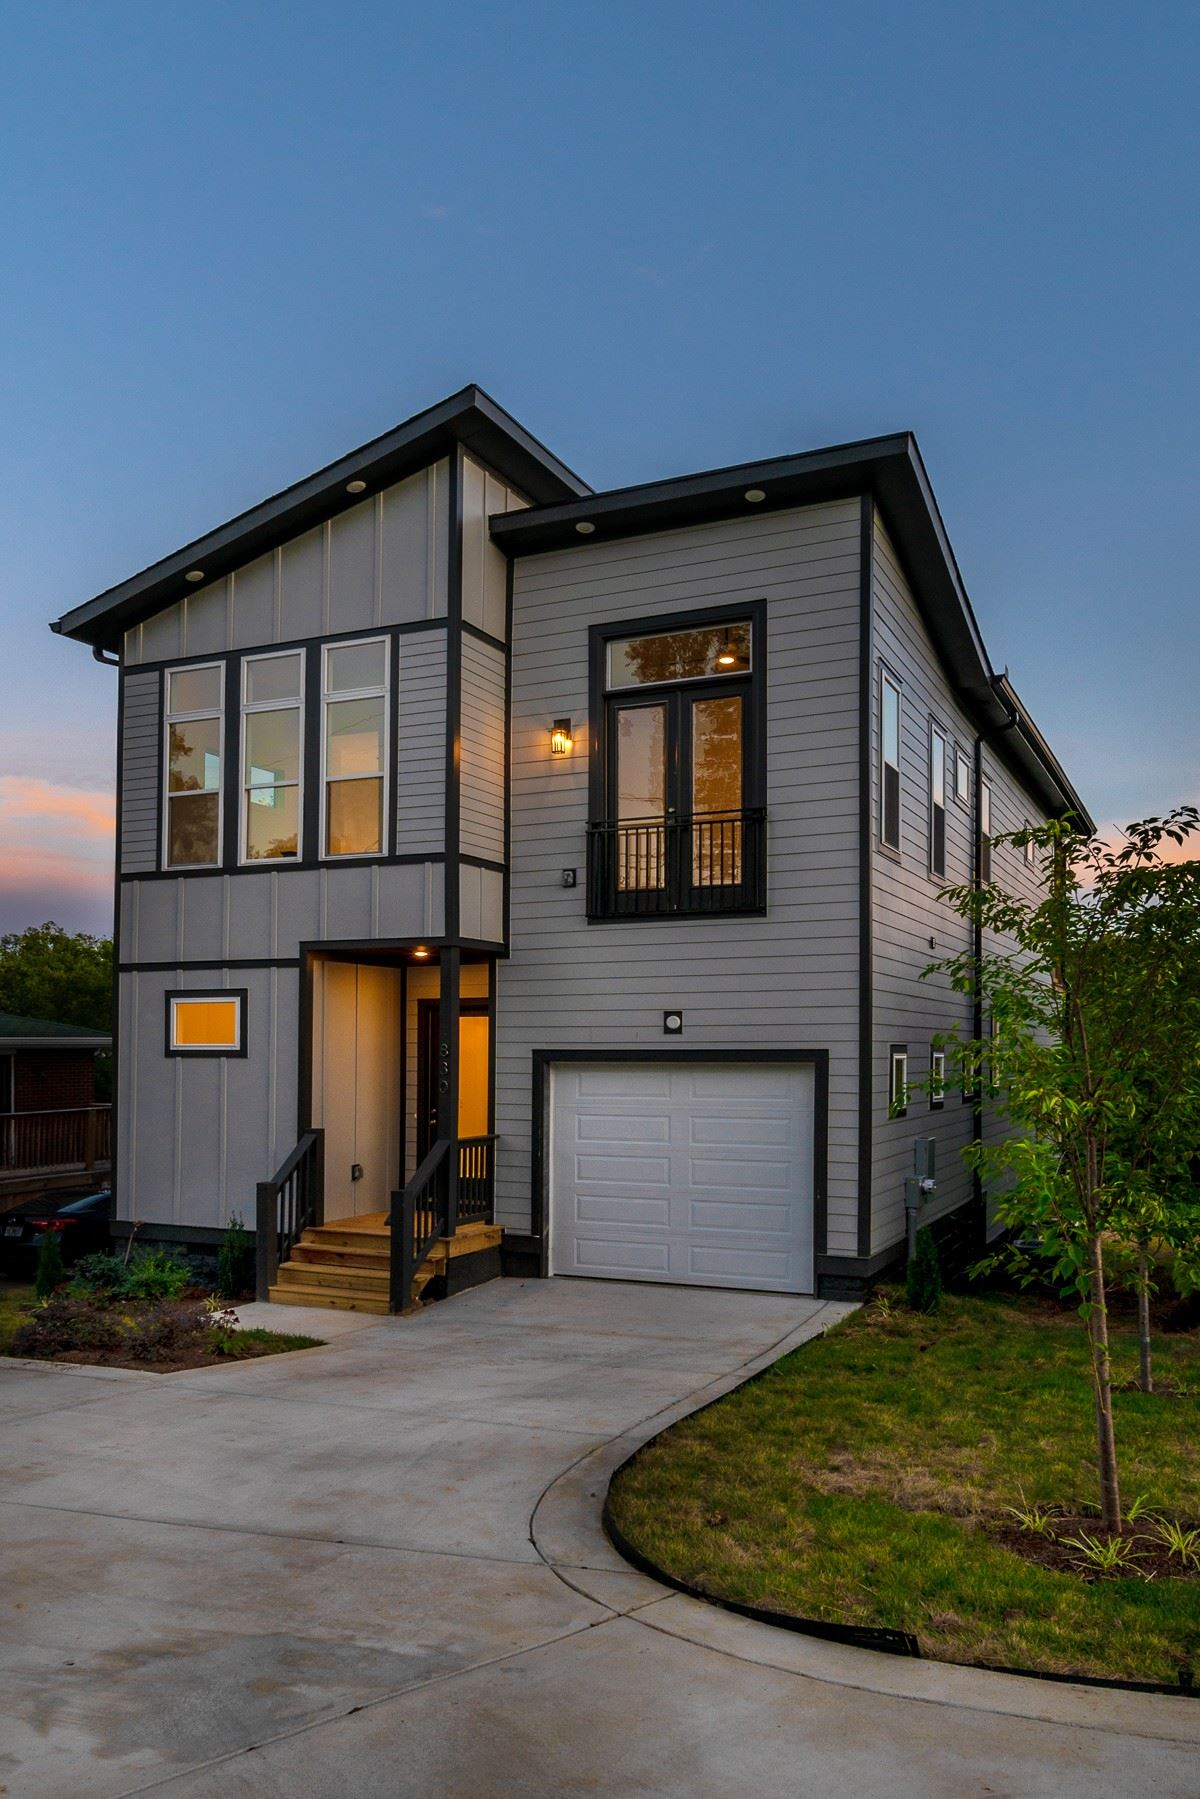 830A Youngs Ln, Nashville, TN 37207 - MLS#: 2182163